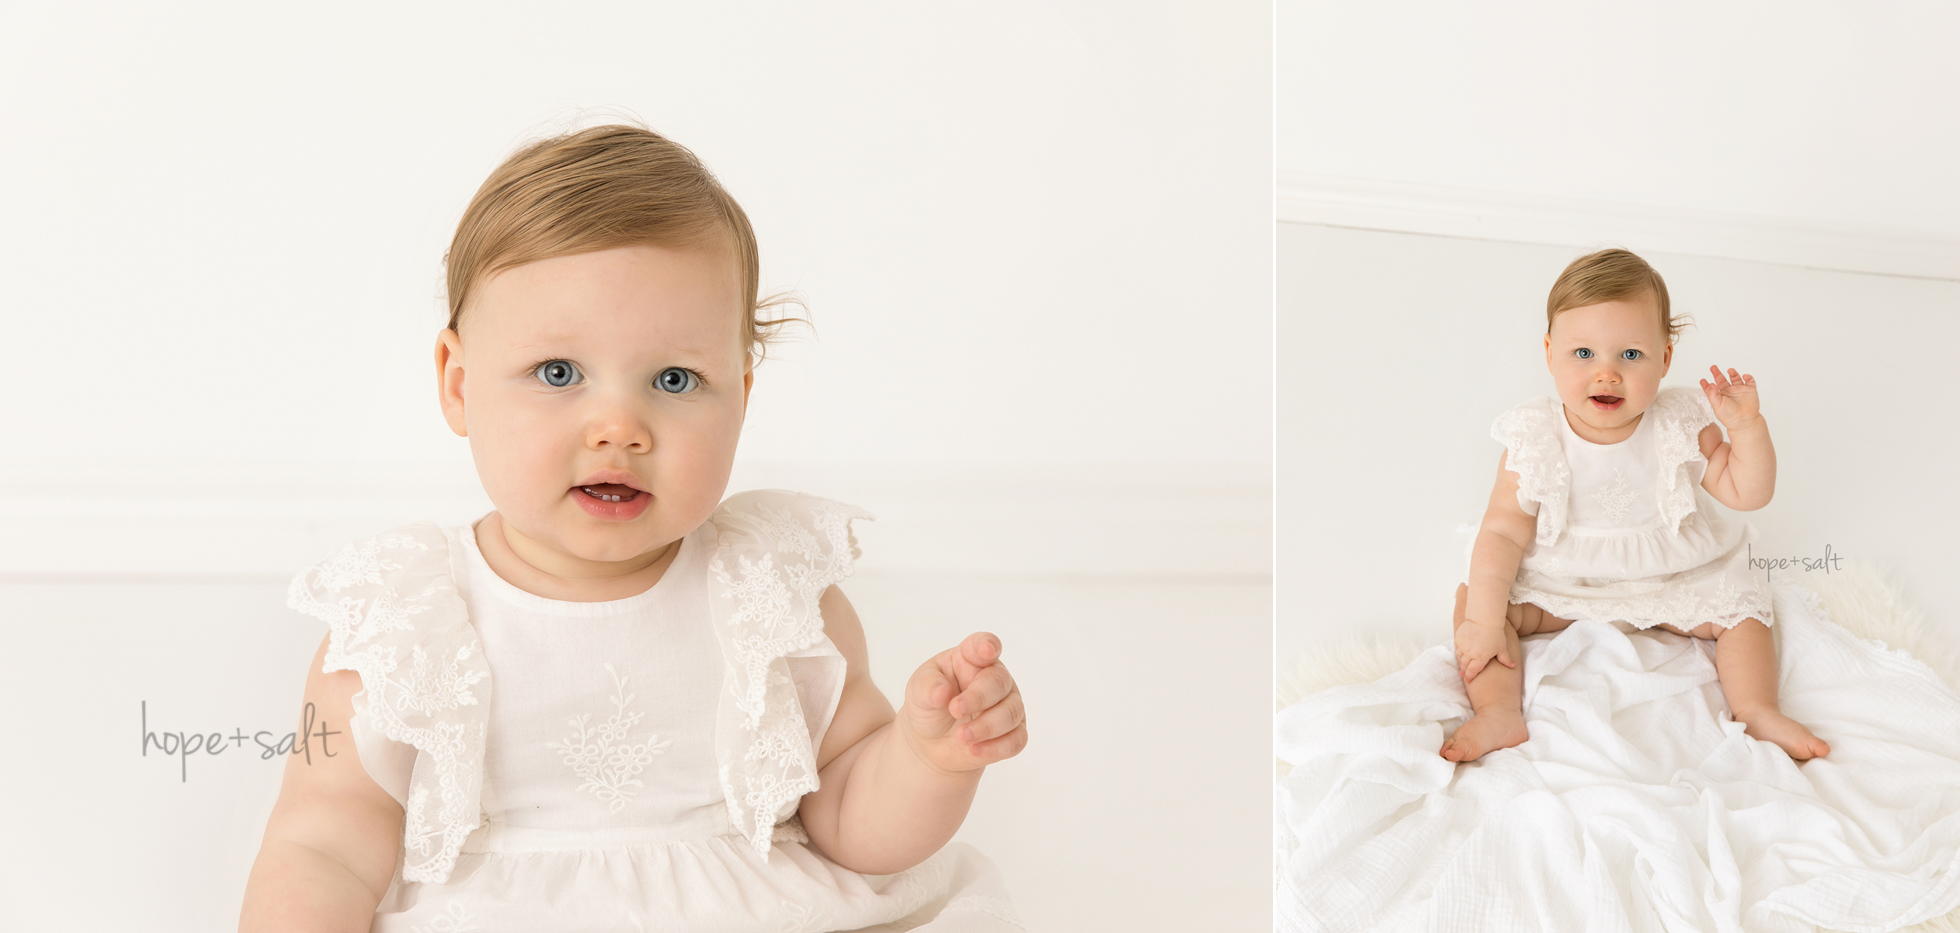 oakville ontario baby photographer - first birthday studio session for 1 year old girl Madeleine in simple natural style by Hope + Salt